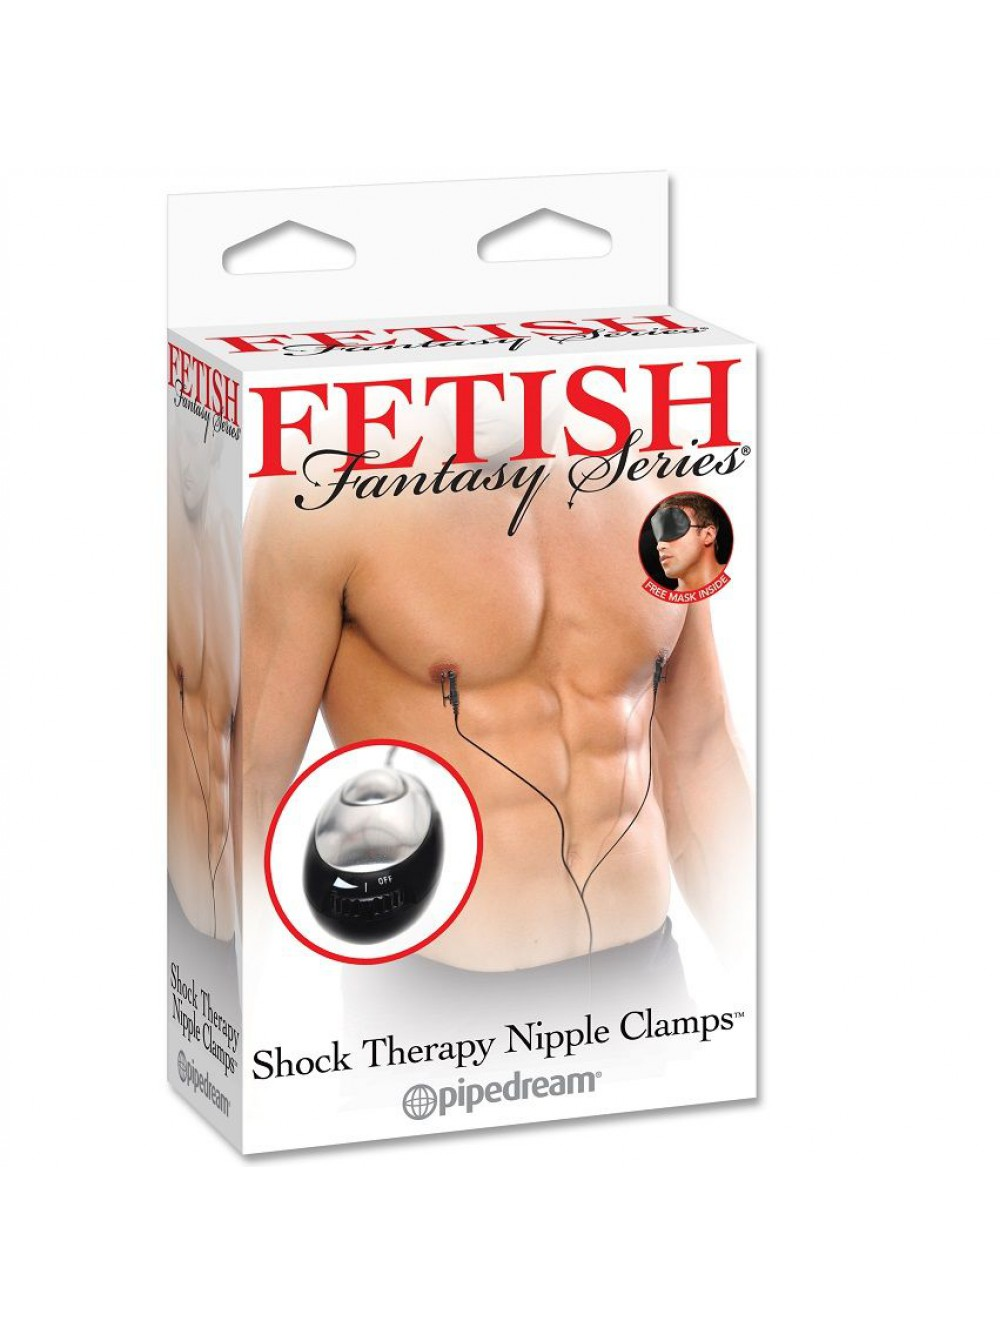 SHOCK THERAPY NIPPLE CLAMPS.